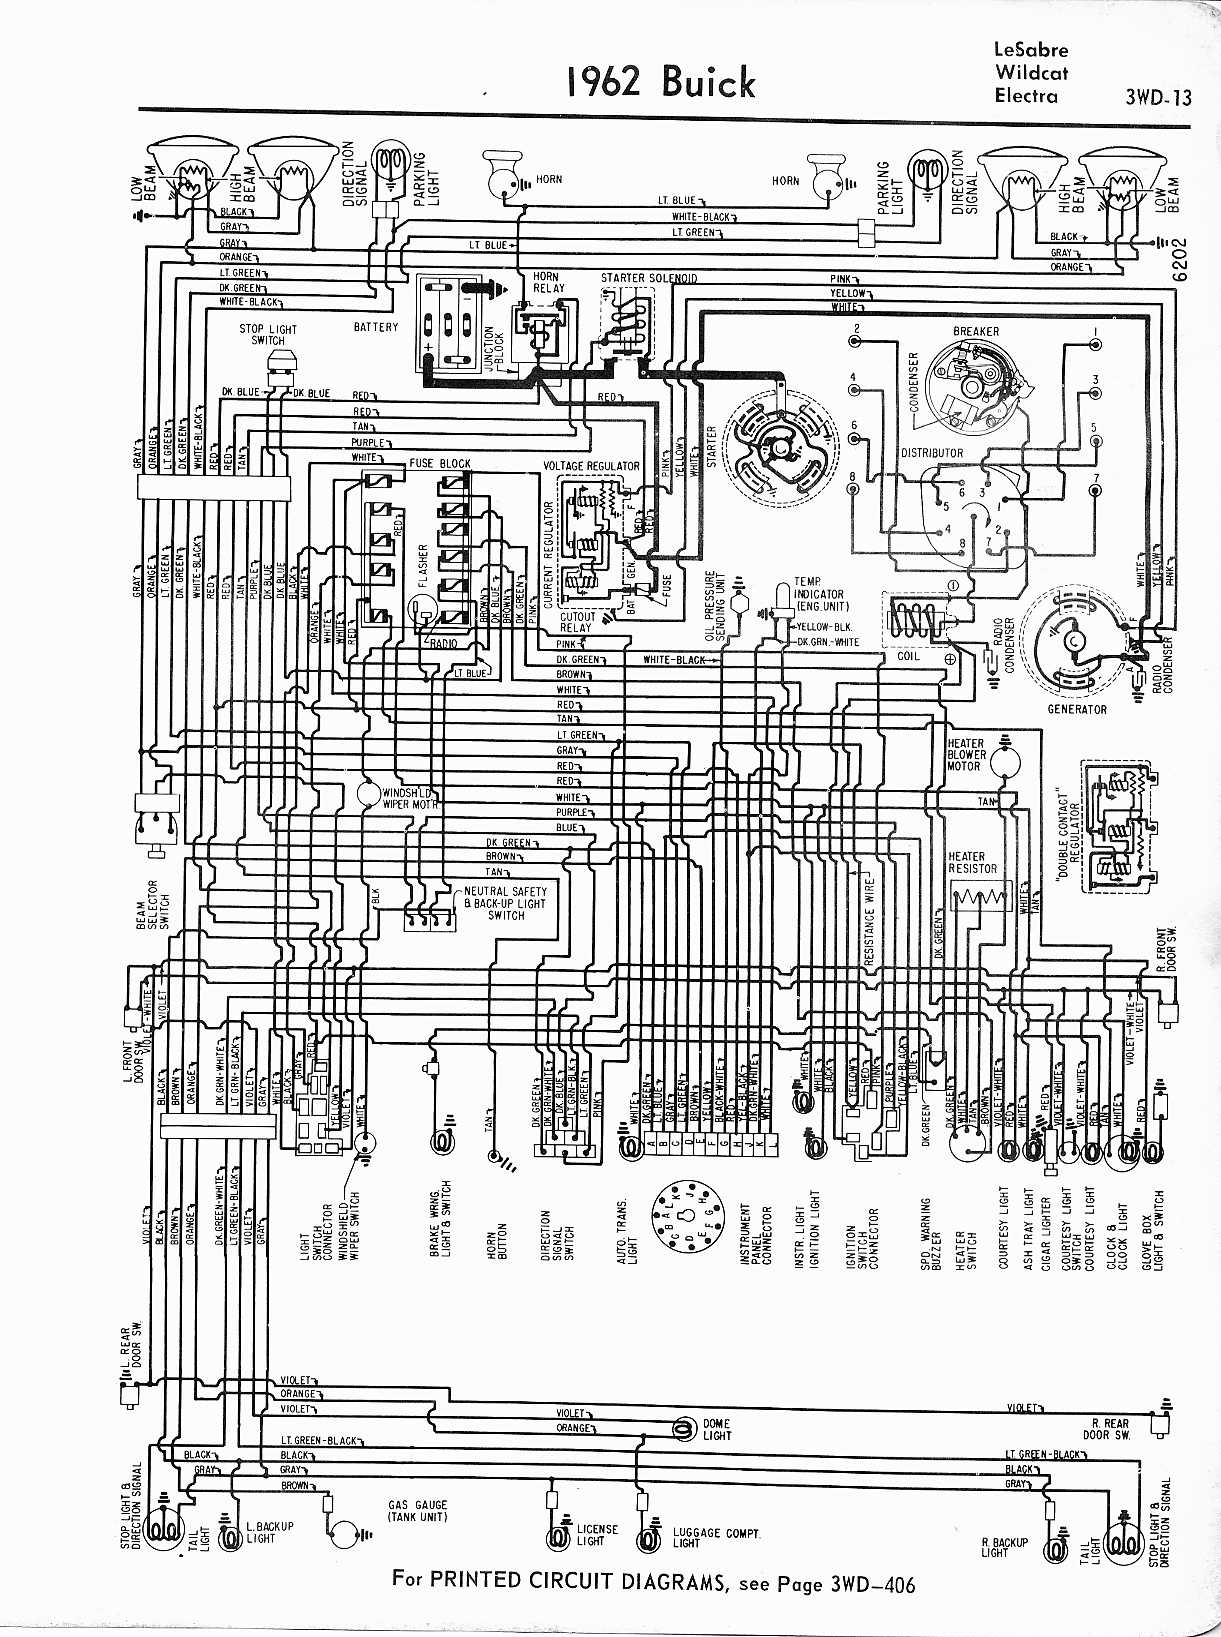 MWireBuic65_3WD 013 buick wiring diagrams 1957 1965  at gsmx.co